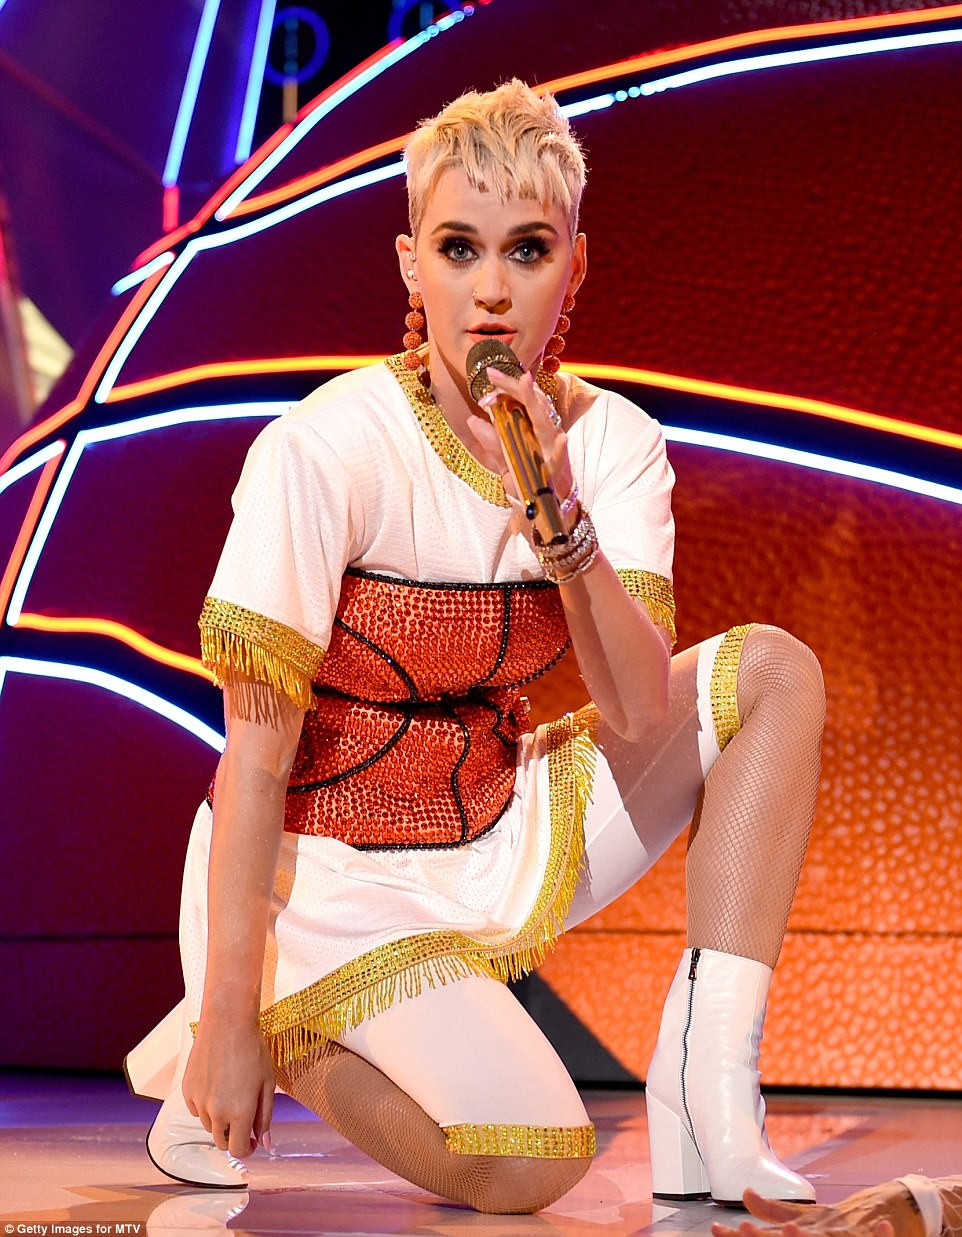 She shoots, she scores! Katy wore a basketball-inspired ensemble for her performance of Swish Swish at the end of the night